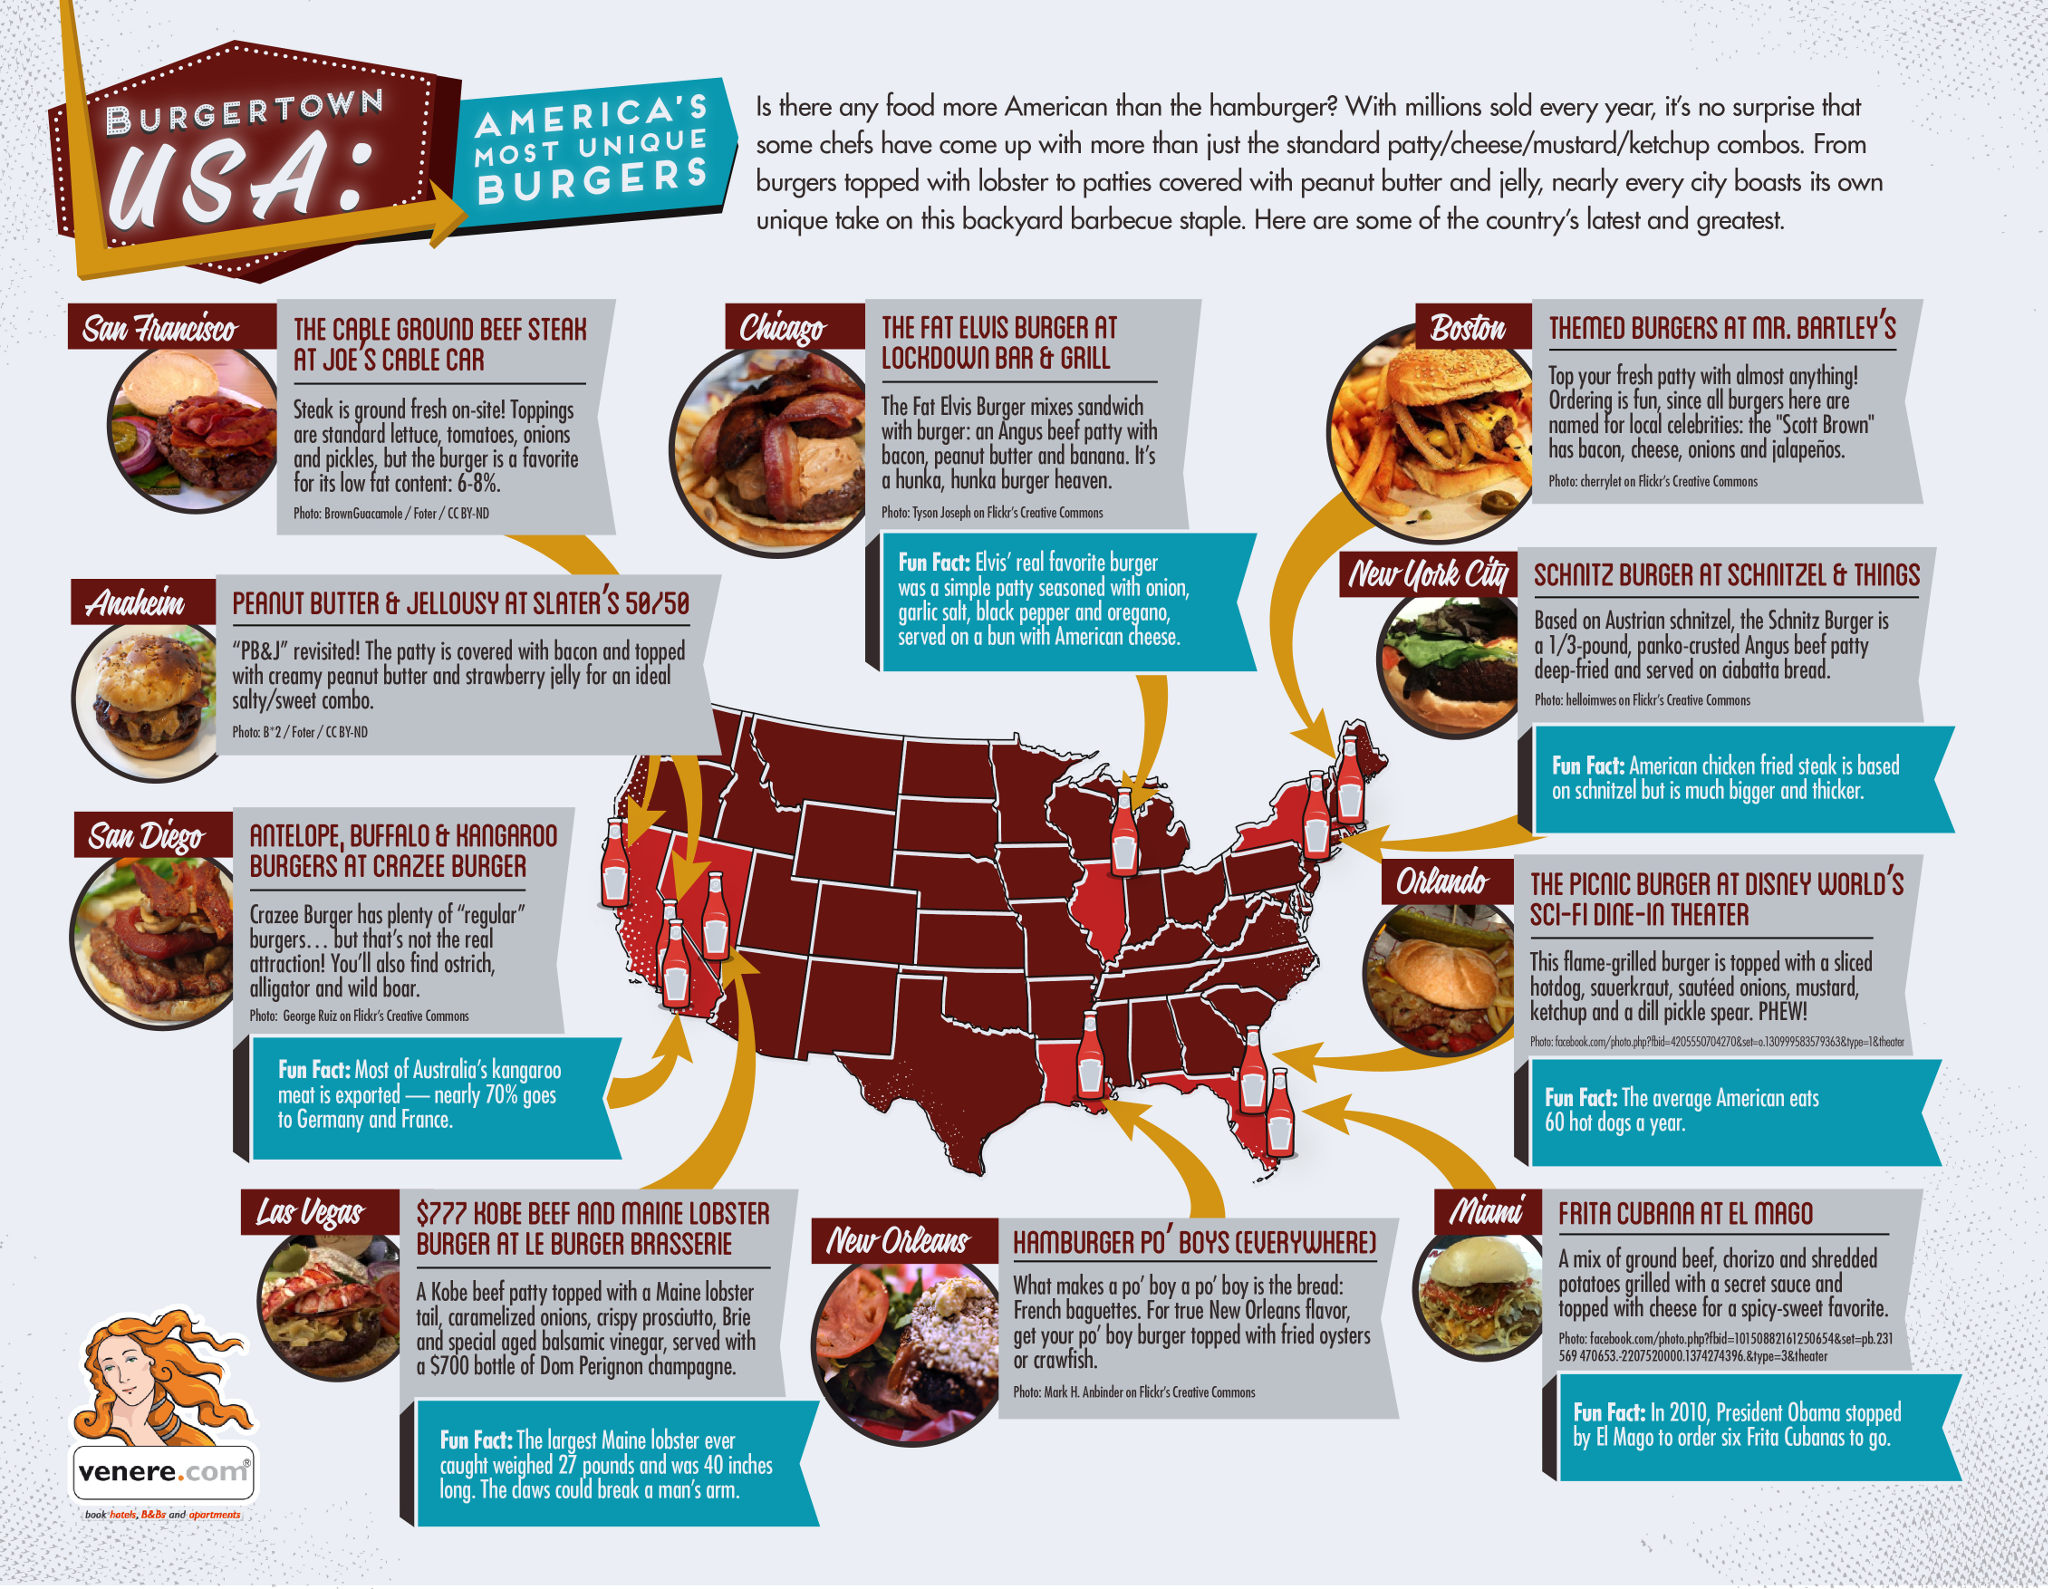 Burgertown USA: America's Most Unique Burgers